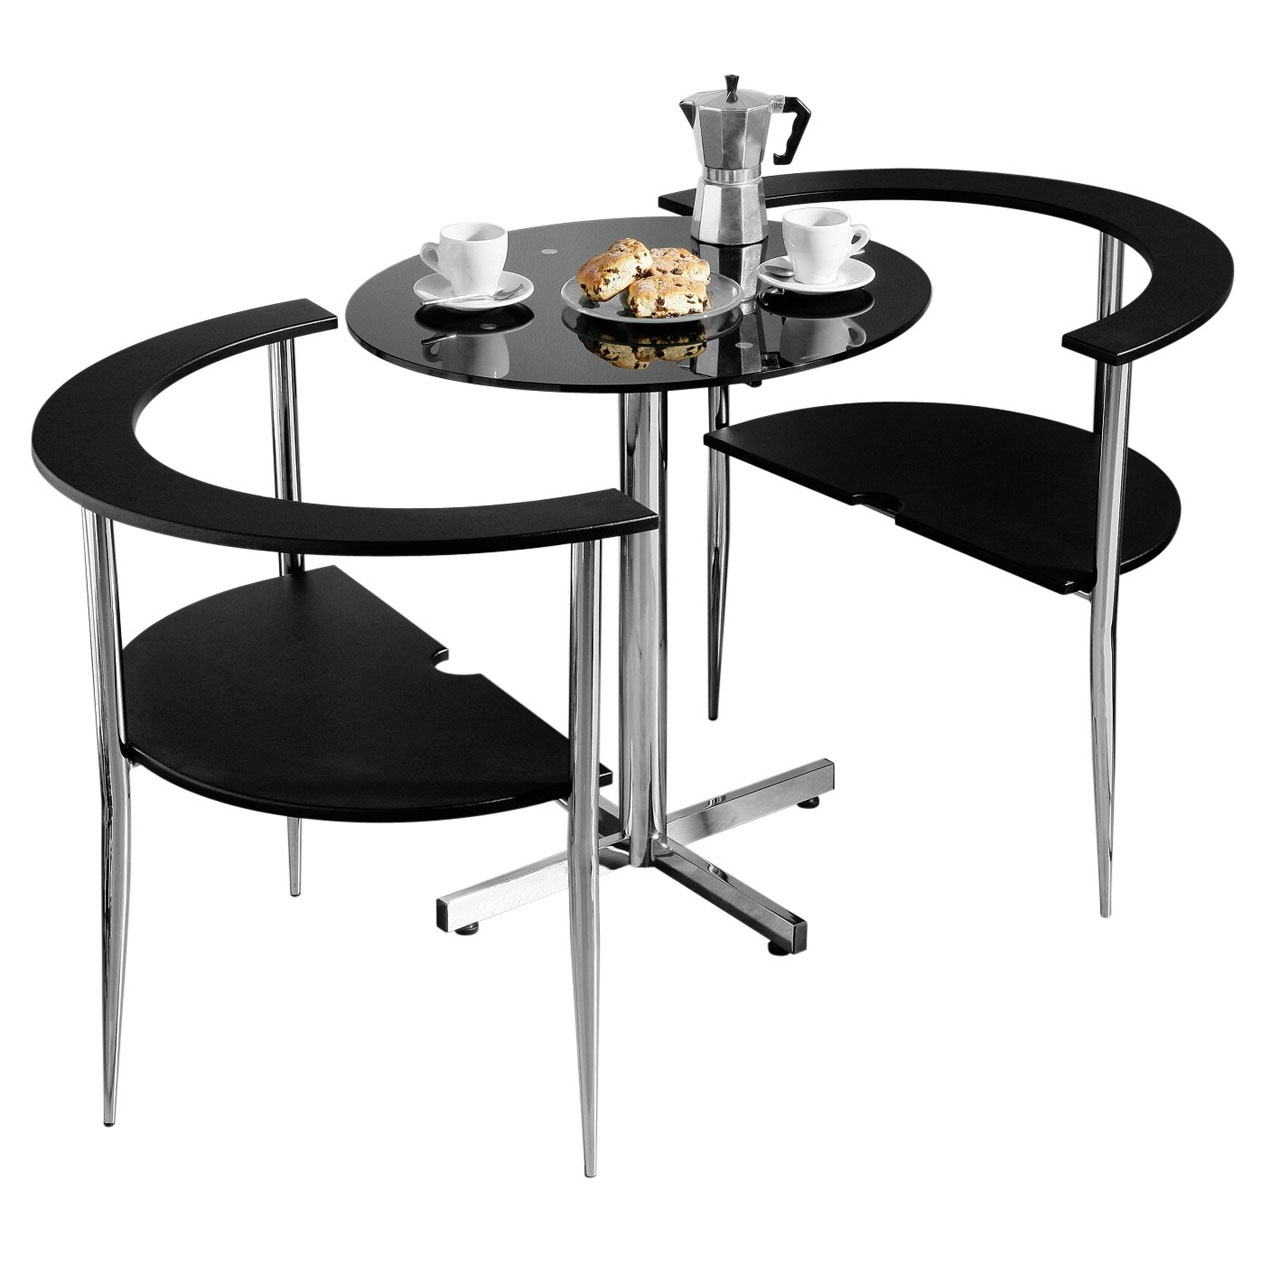 2017 3Pc Round Love Dining Set Black Tempered Glass Table Top 2 Chairs throughout Two Seat Dining Tables